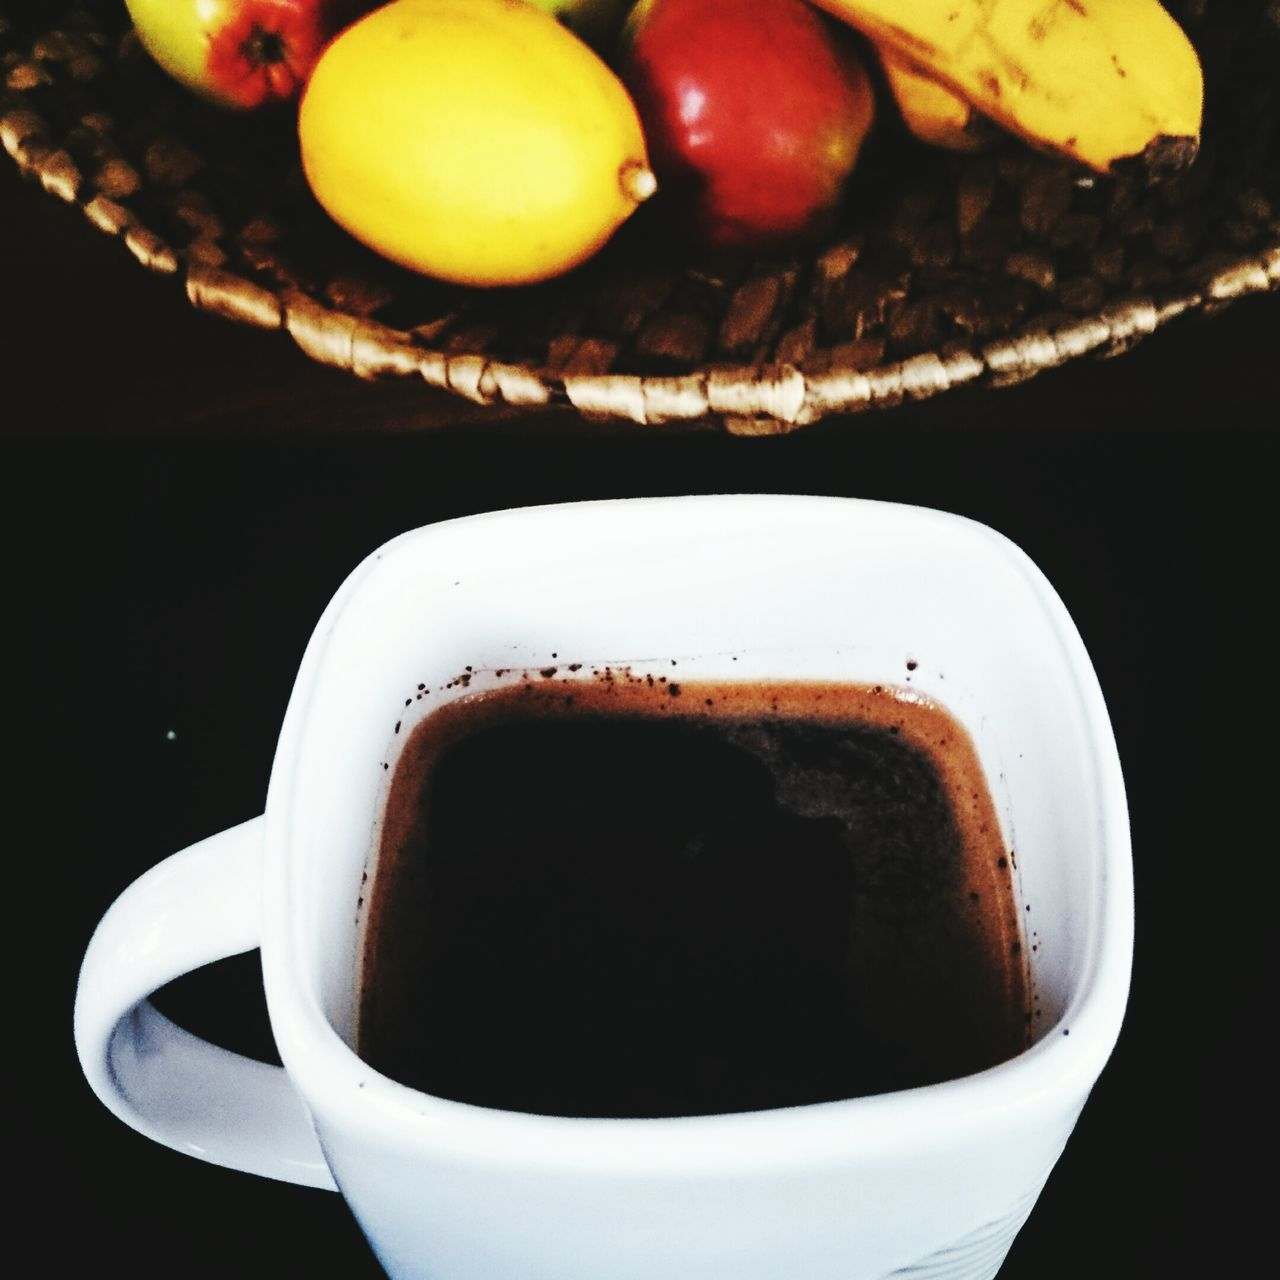 food and drink, drink, coffee cup, coffee - drink, refreshment, freshness, cup, close-up, no people, food, frothy drink, indoors, table, heat - temperature, healthy eating, black background, day